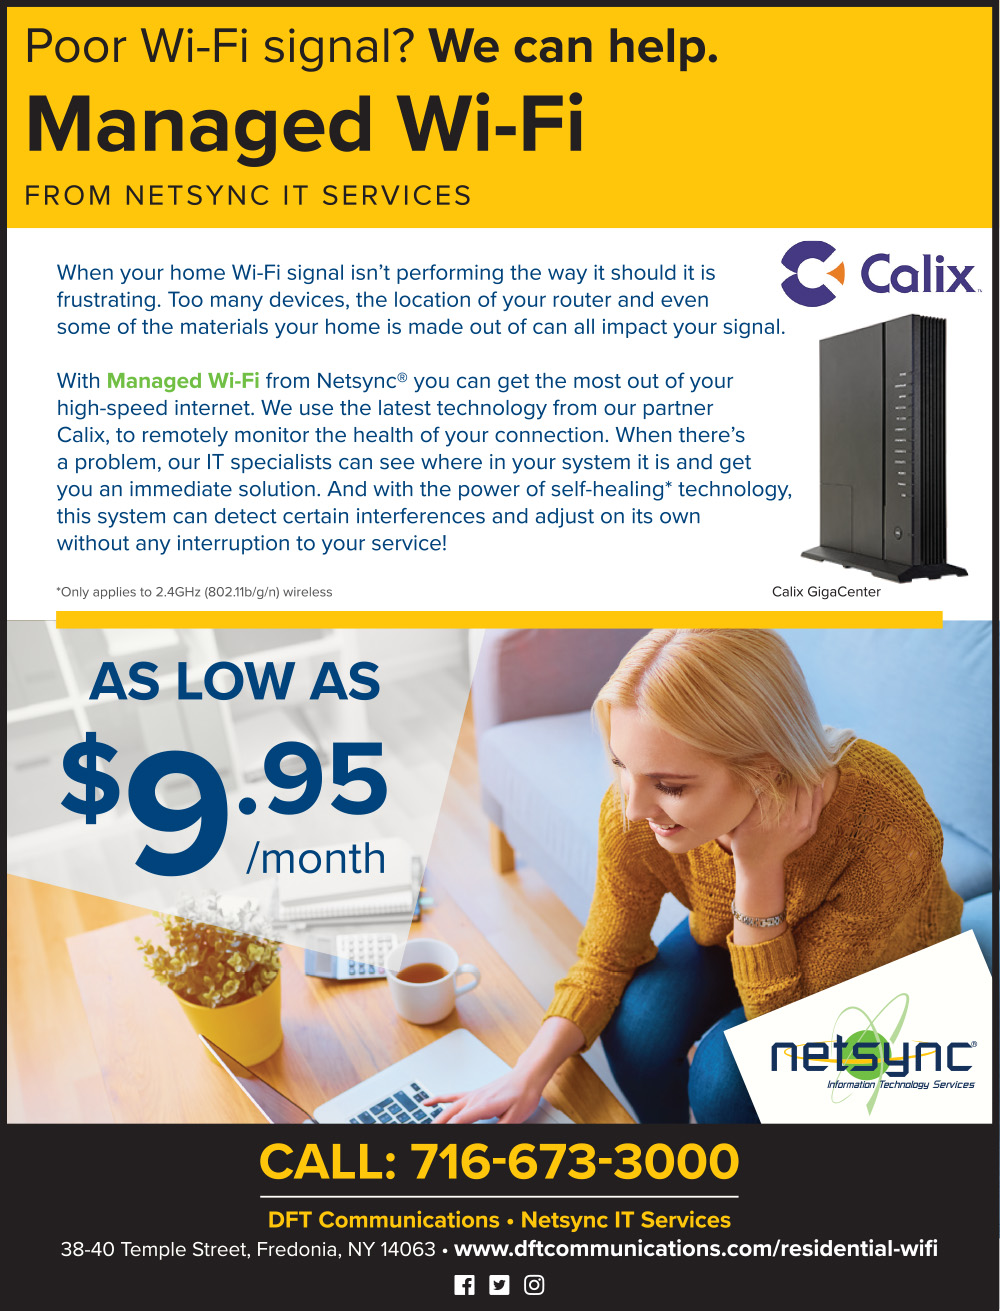 Current Promotions | Netsync IT Services | Managed Wi-Fi Details